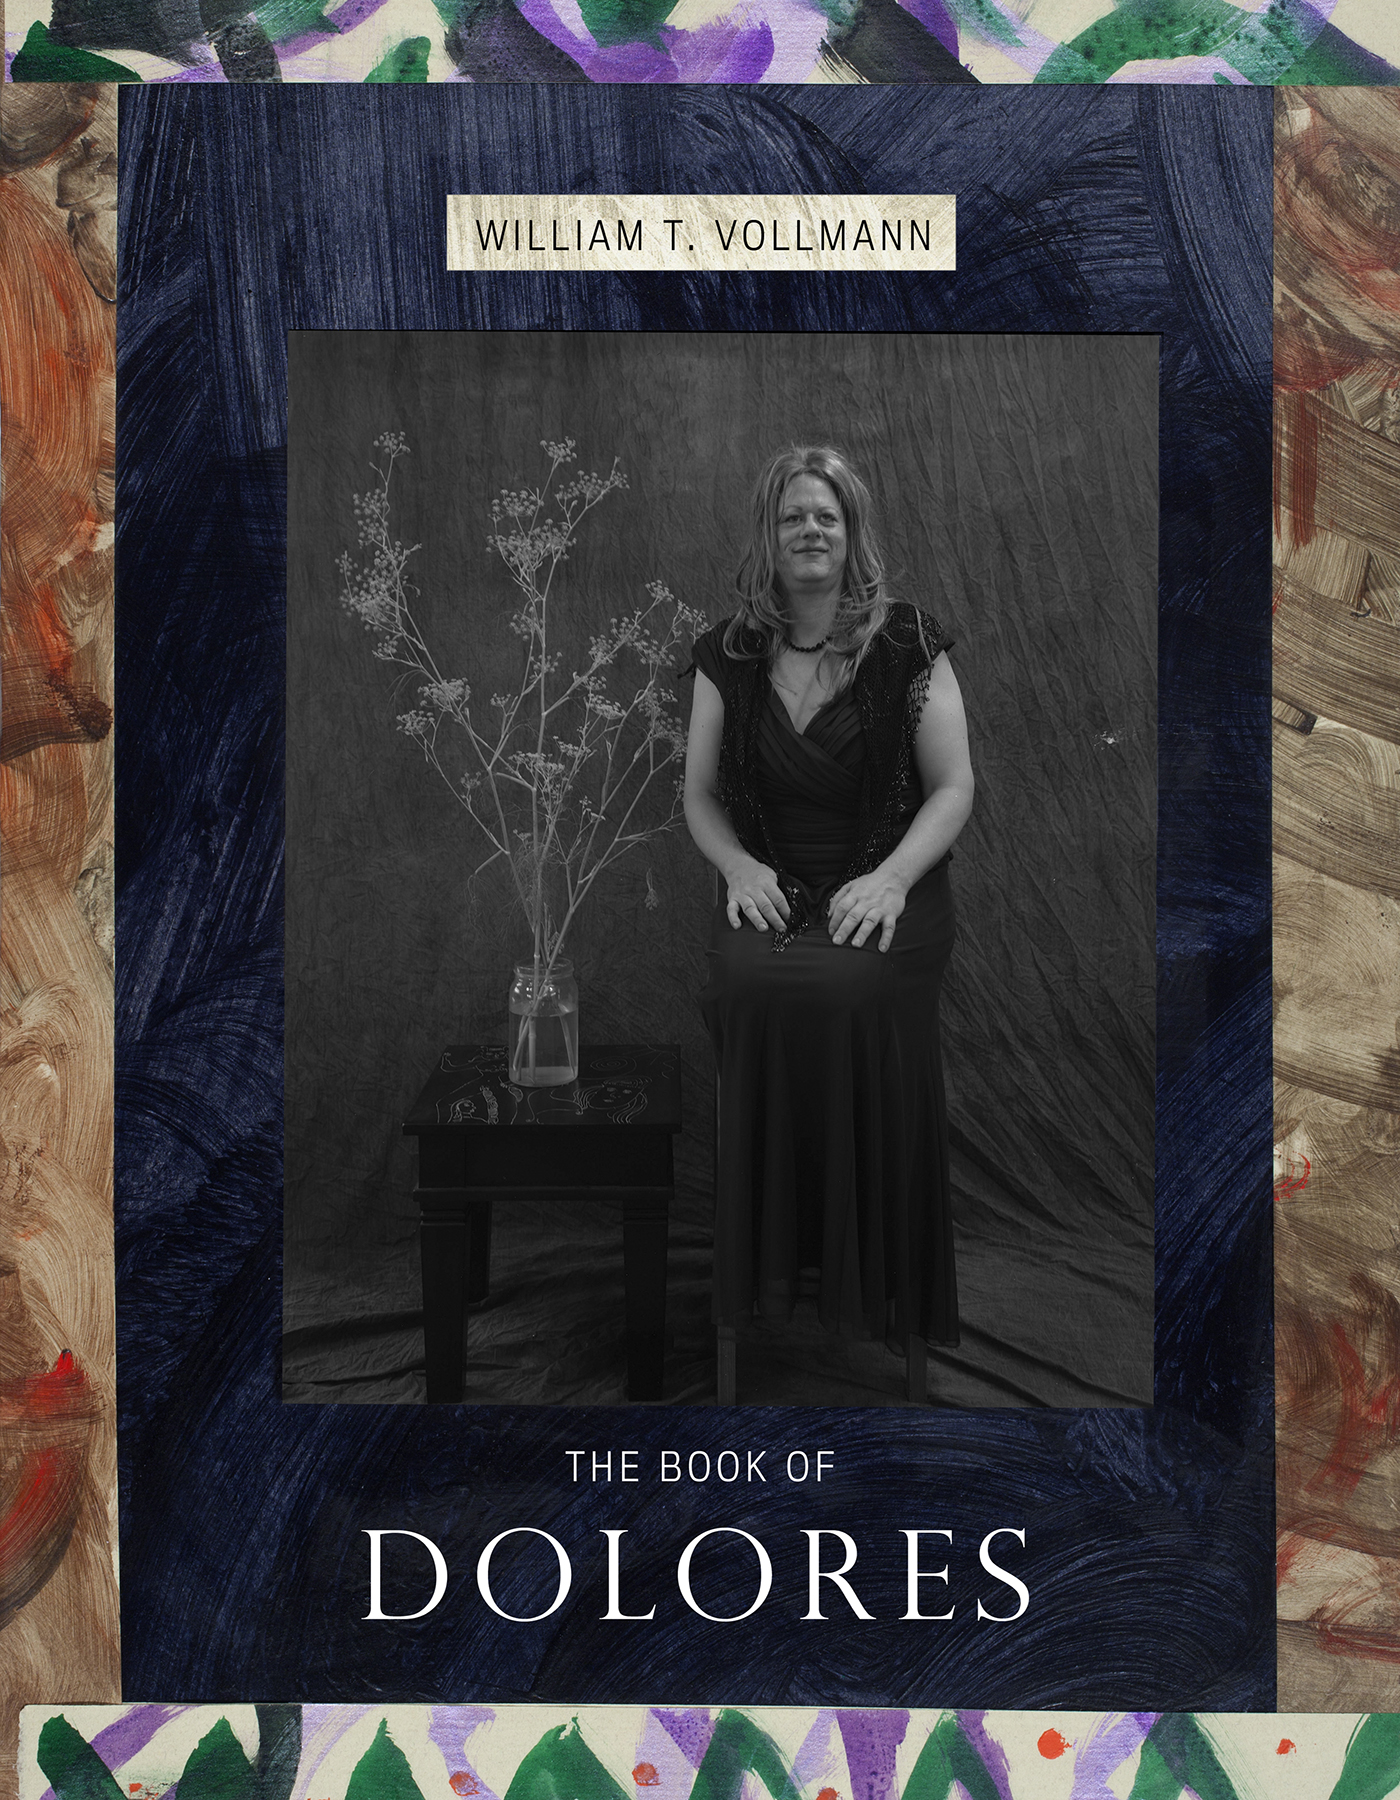 powerHouse Book Launch: The Book of Dolores by William T. Vollmann